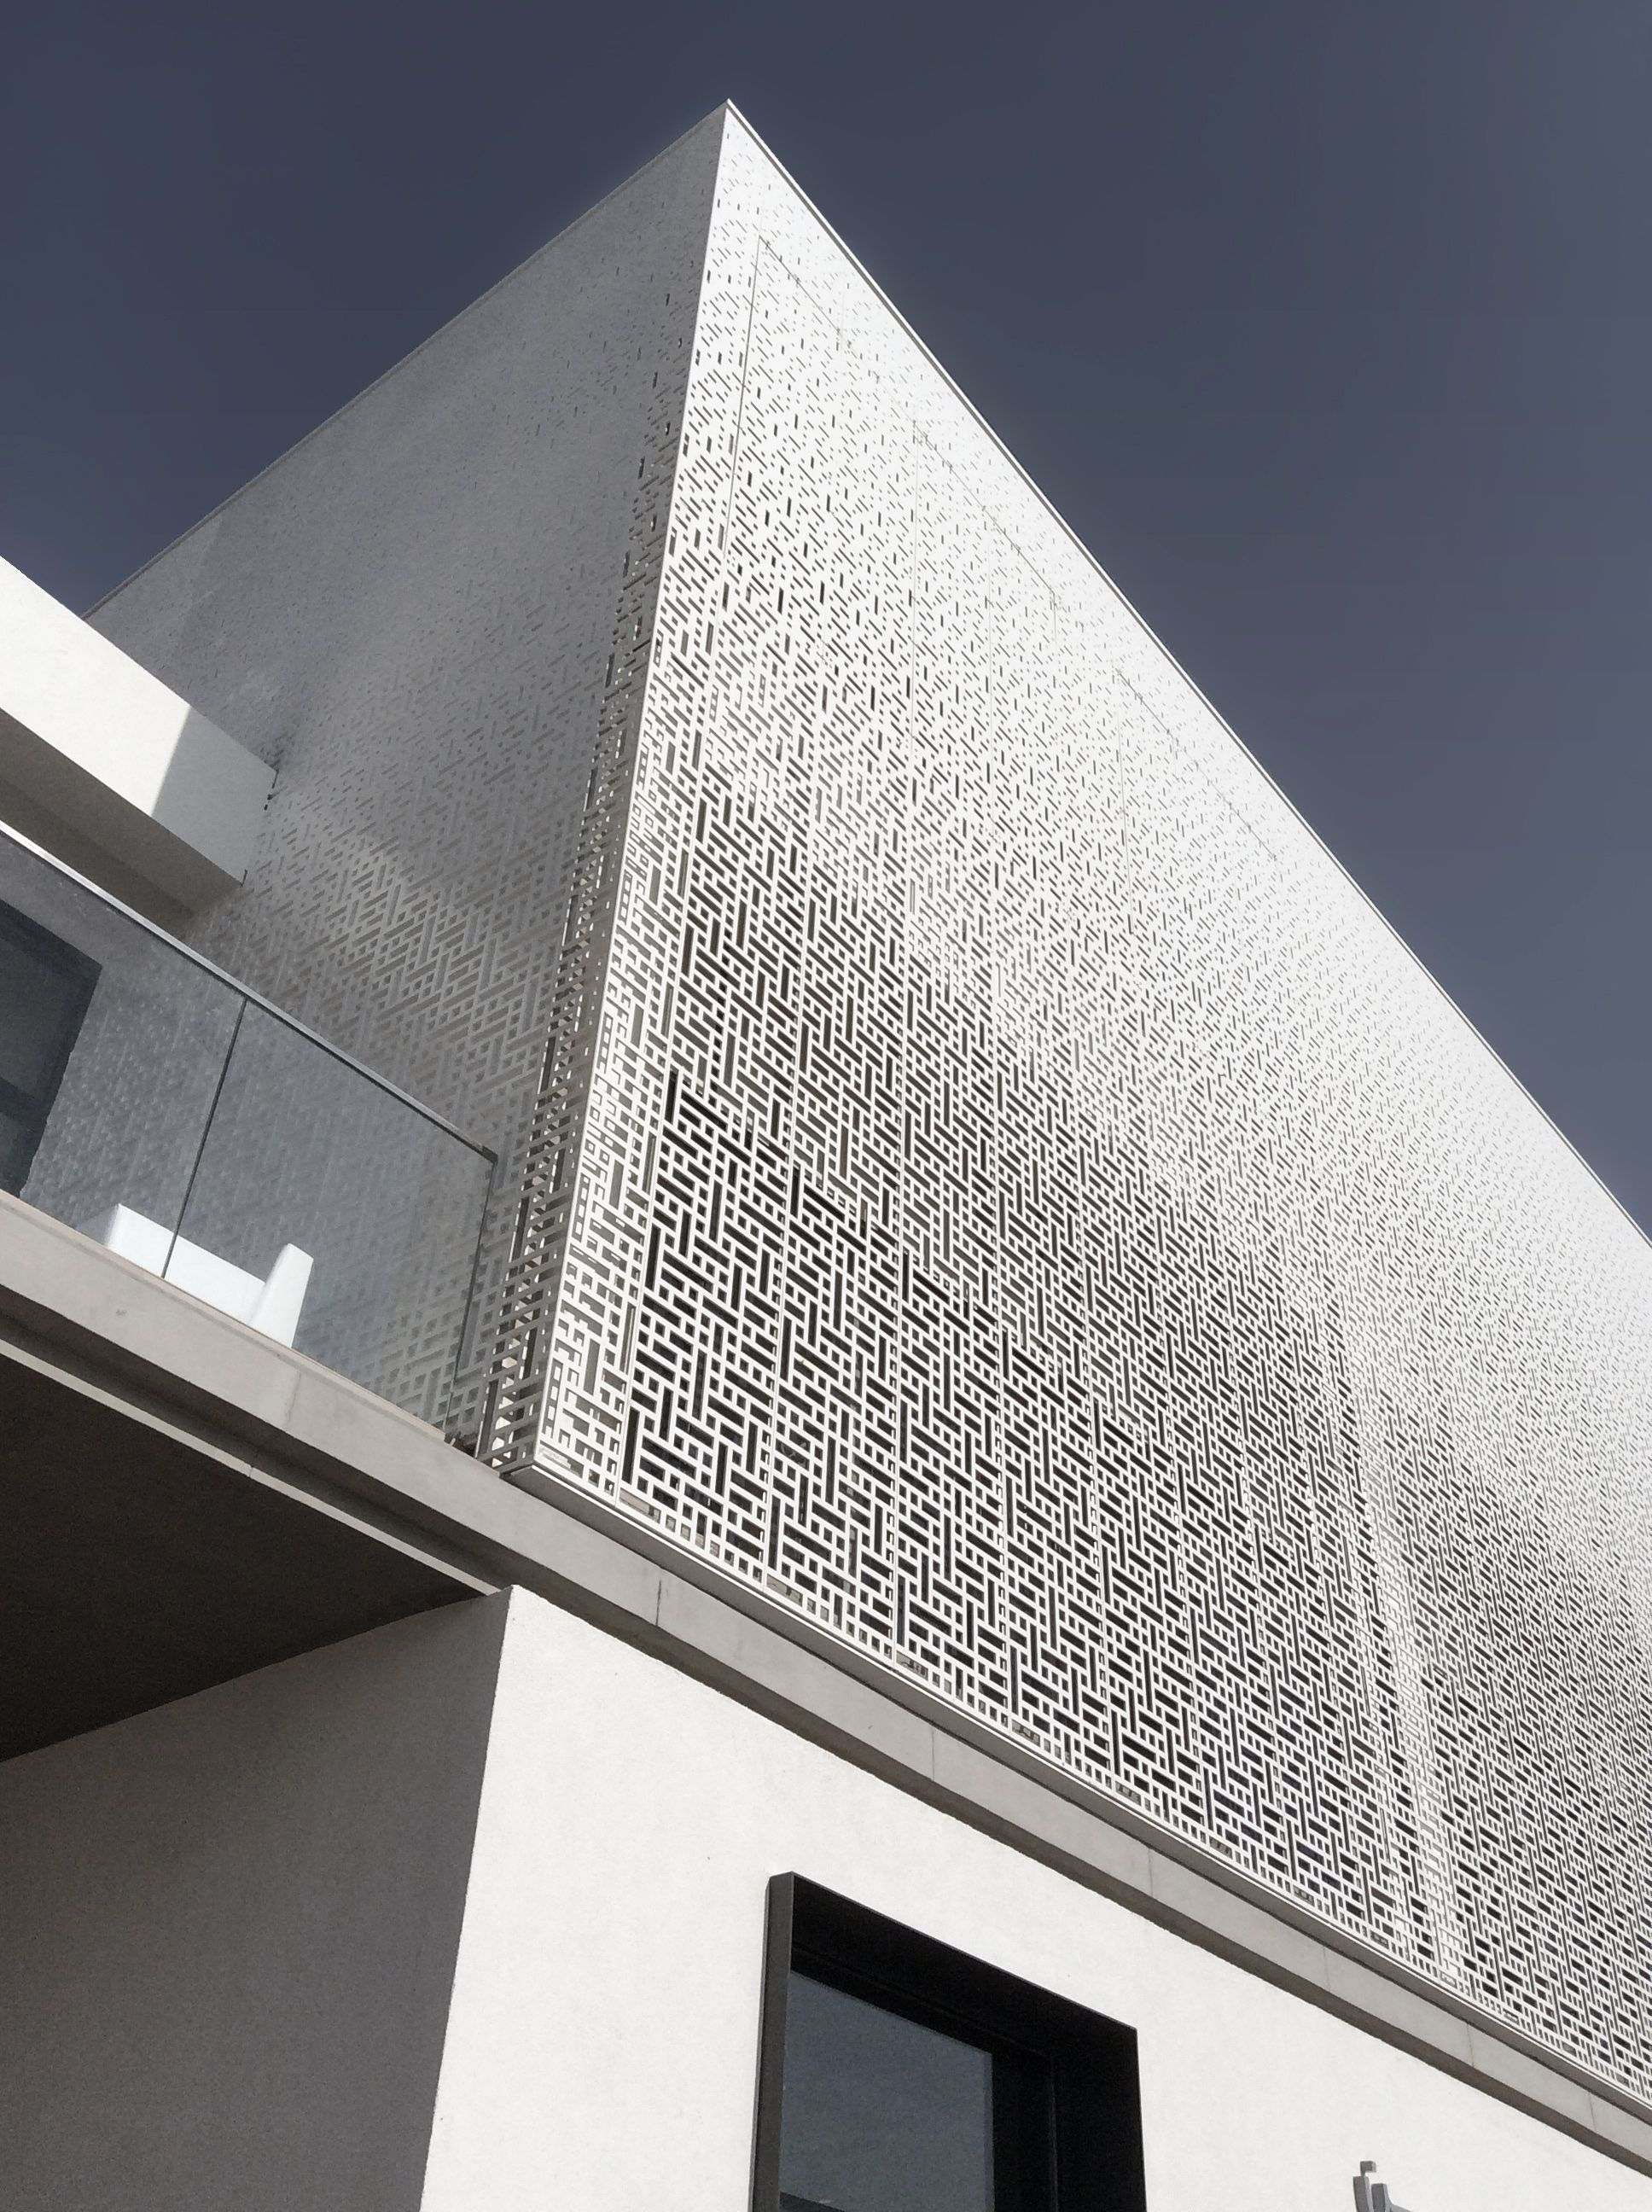 Marassi al bahrain sales center modern architecture pattern